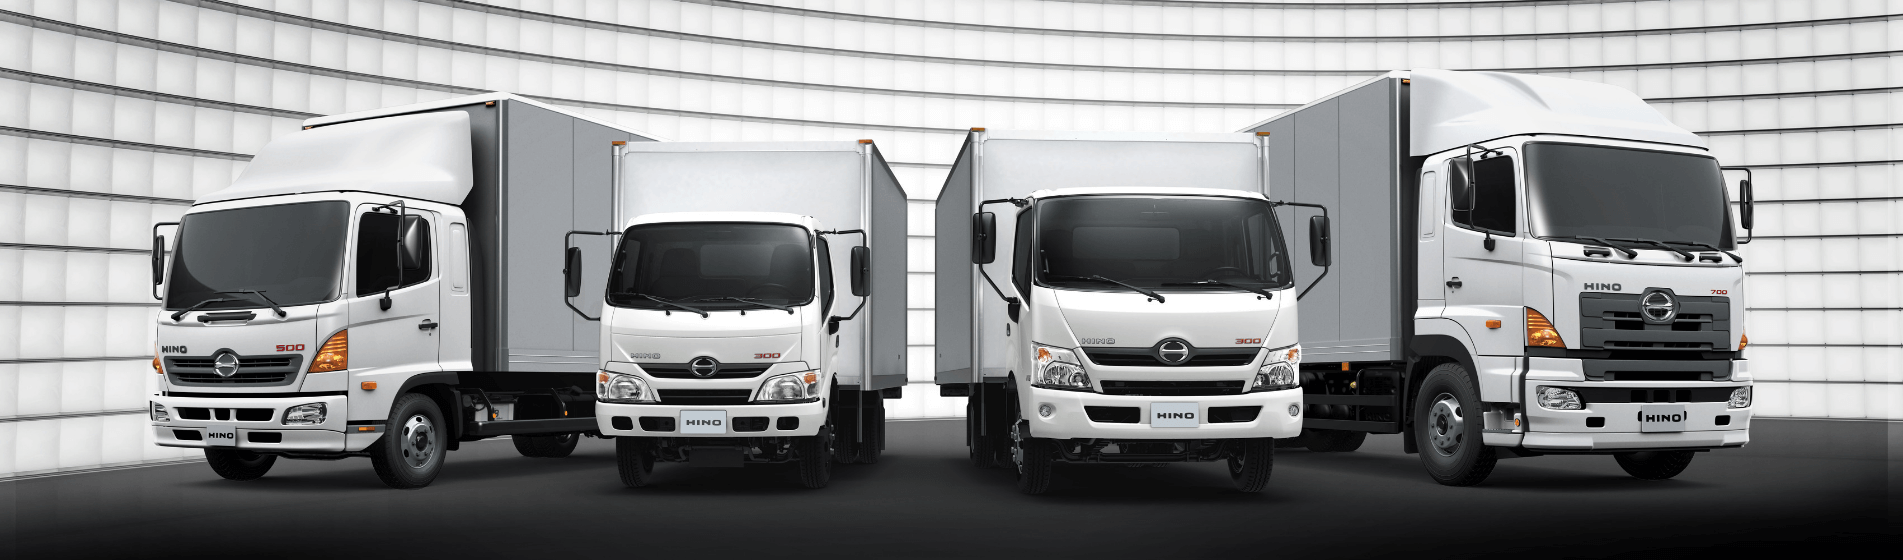 Hino Motor Vehicles Singapore